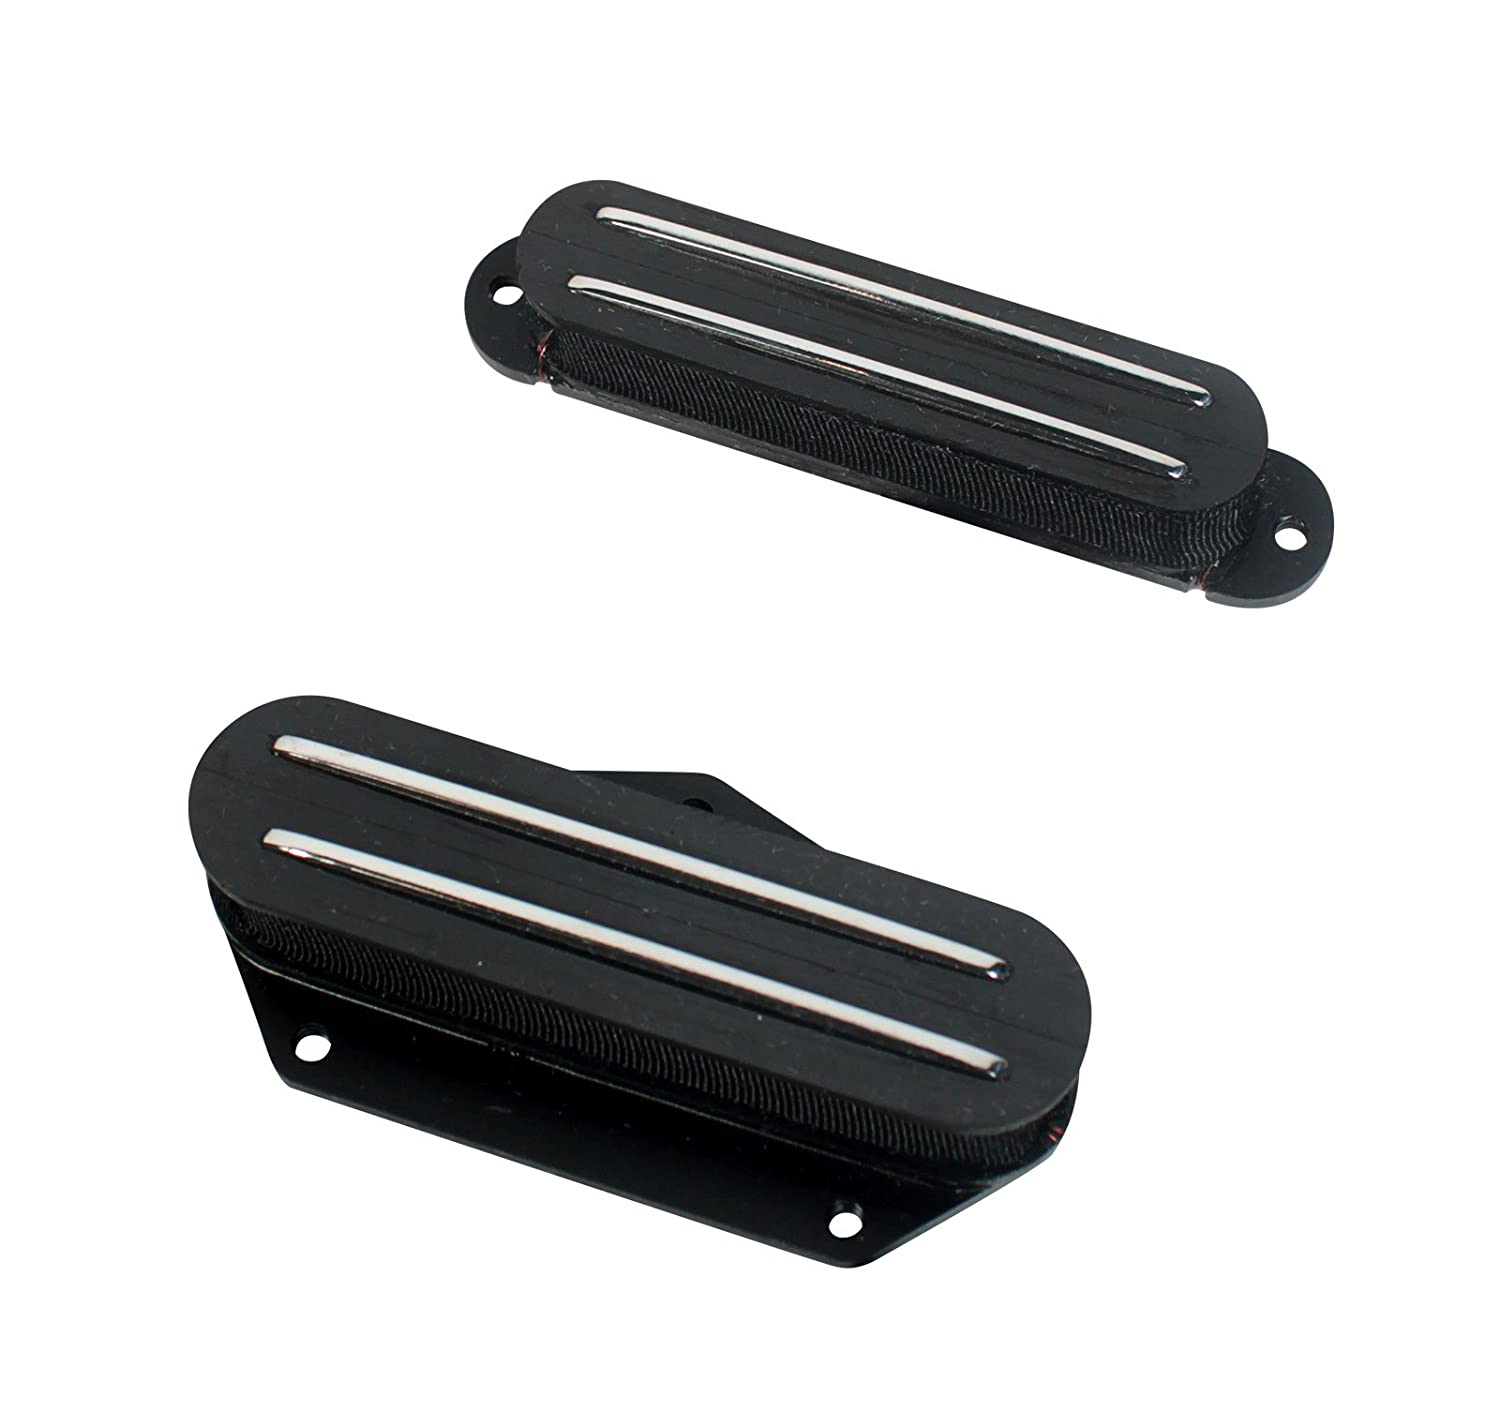 Amazon.com: JBE Joe Barden Danny Gatton T-Style Pickup Set for Fender Tele  Telecaster- Black: Musical Instruments